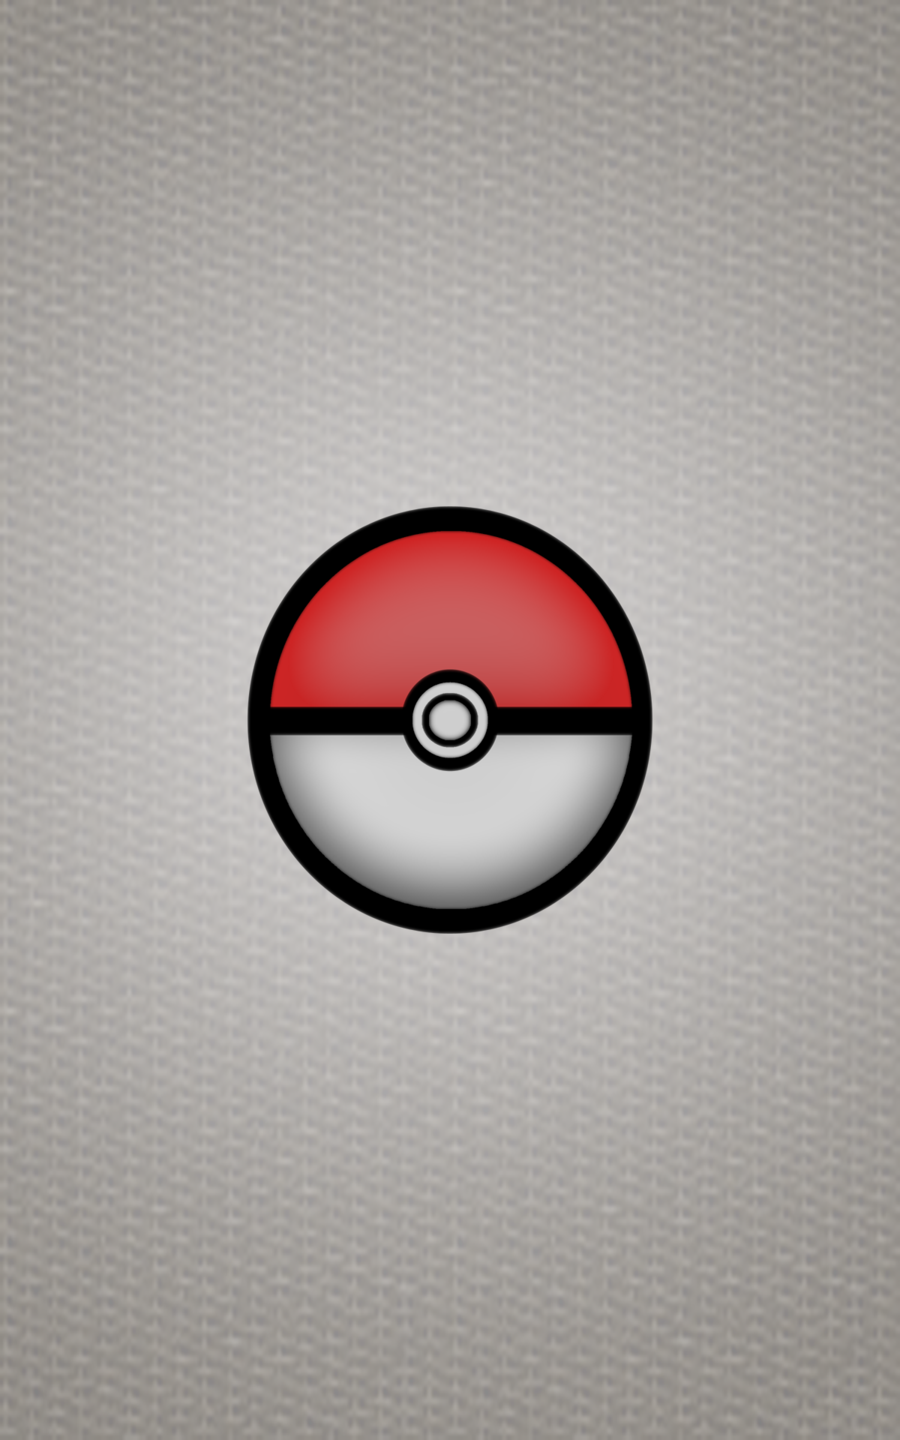 Pokemon Iphone Wallpaper Hd